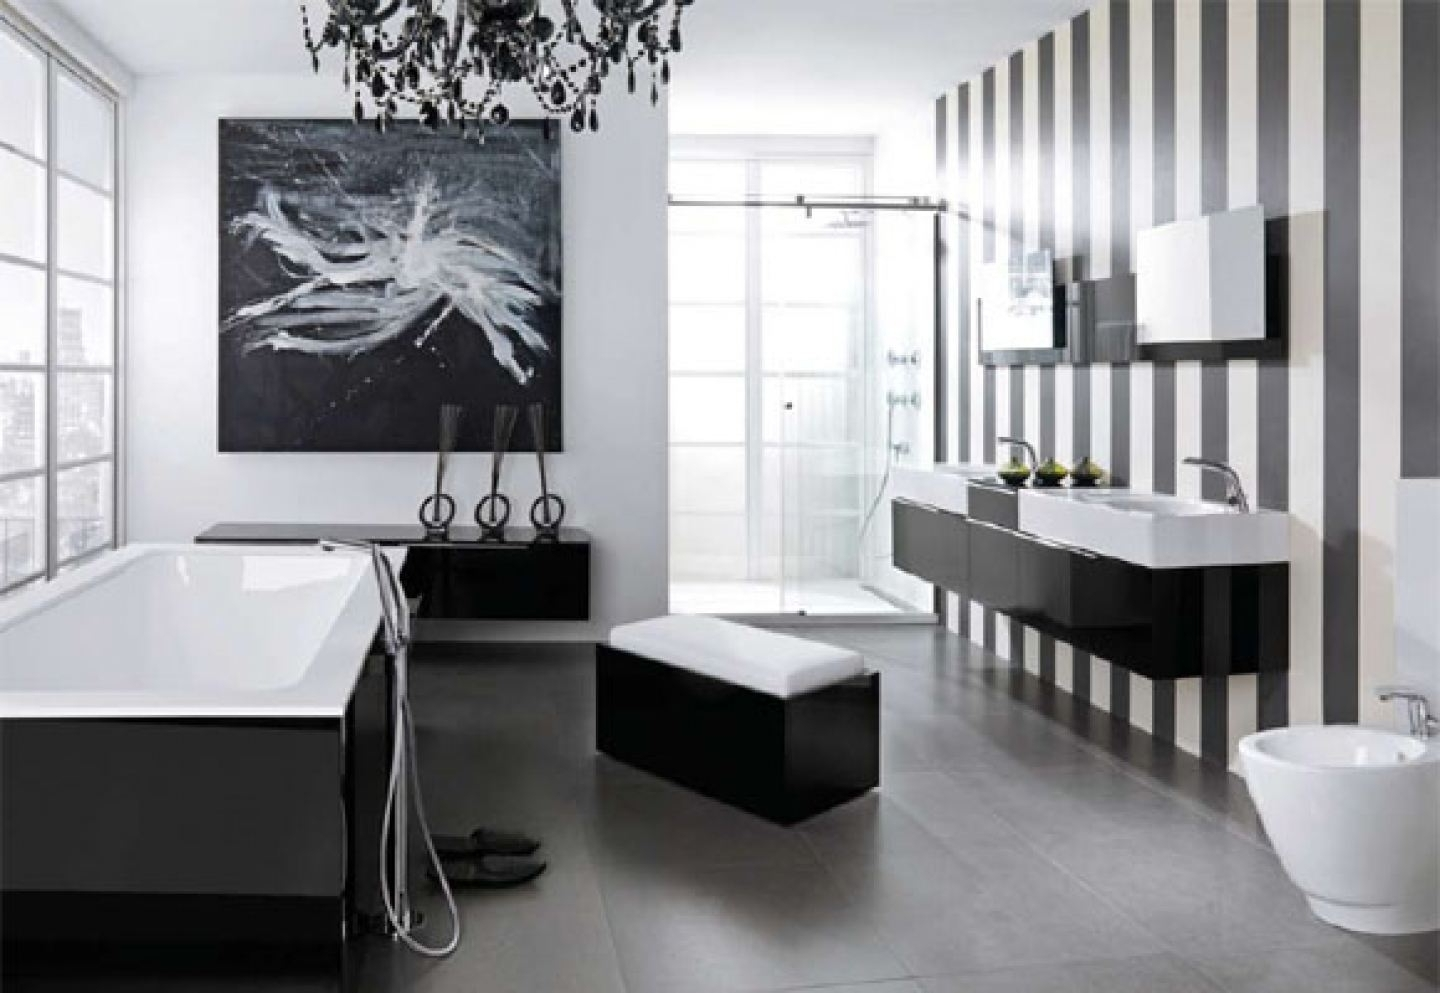 Black And White Bathroom Border Tiles Black White Glossy Finished Pertaining To Well Known Wall Mounted Bathroom Chandeliers (View 14 of 20)